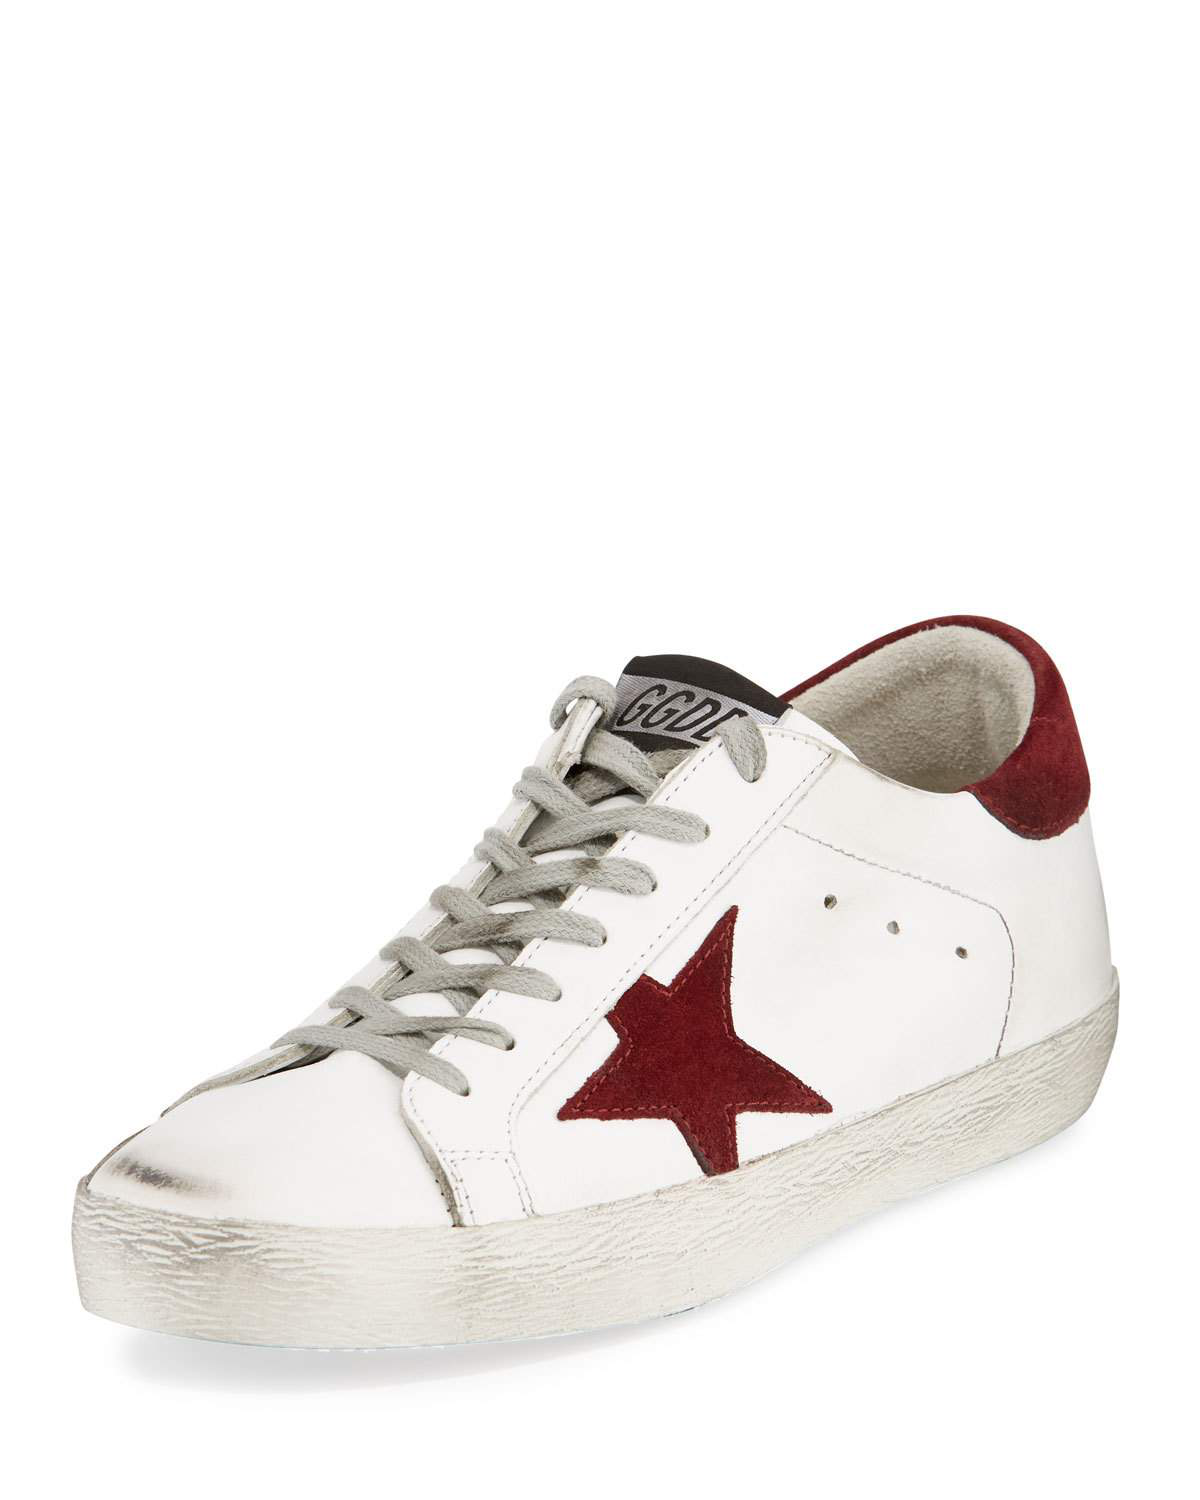 Golden Goose Men's Superstar Leather Low-Top Sneakers In White